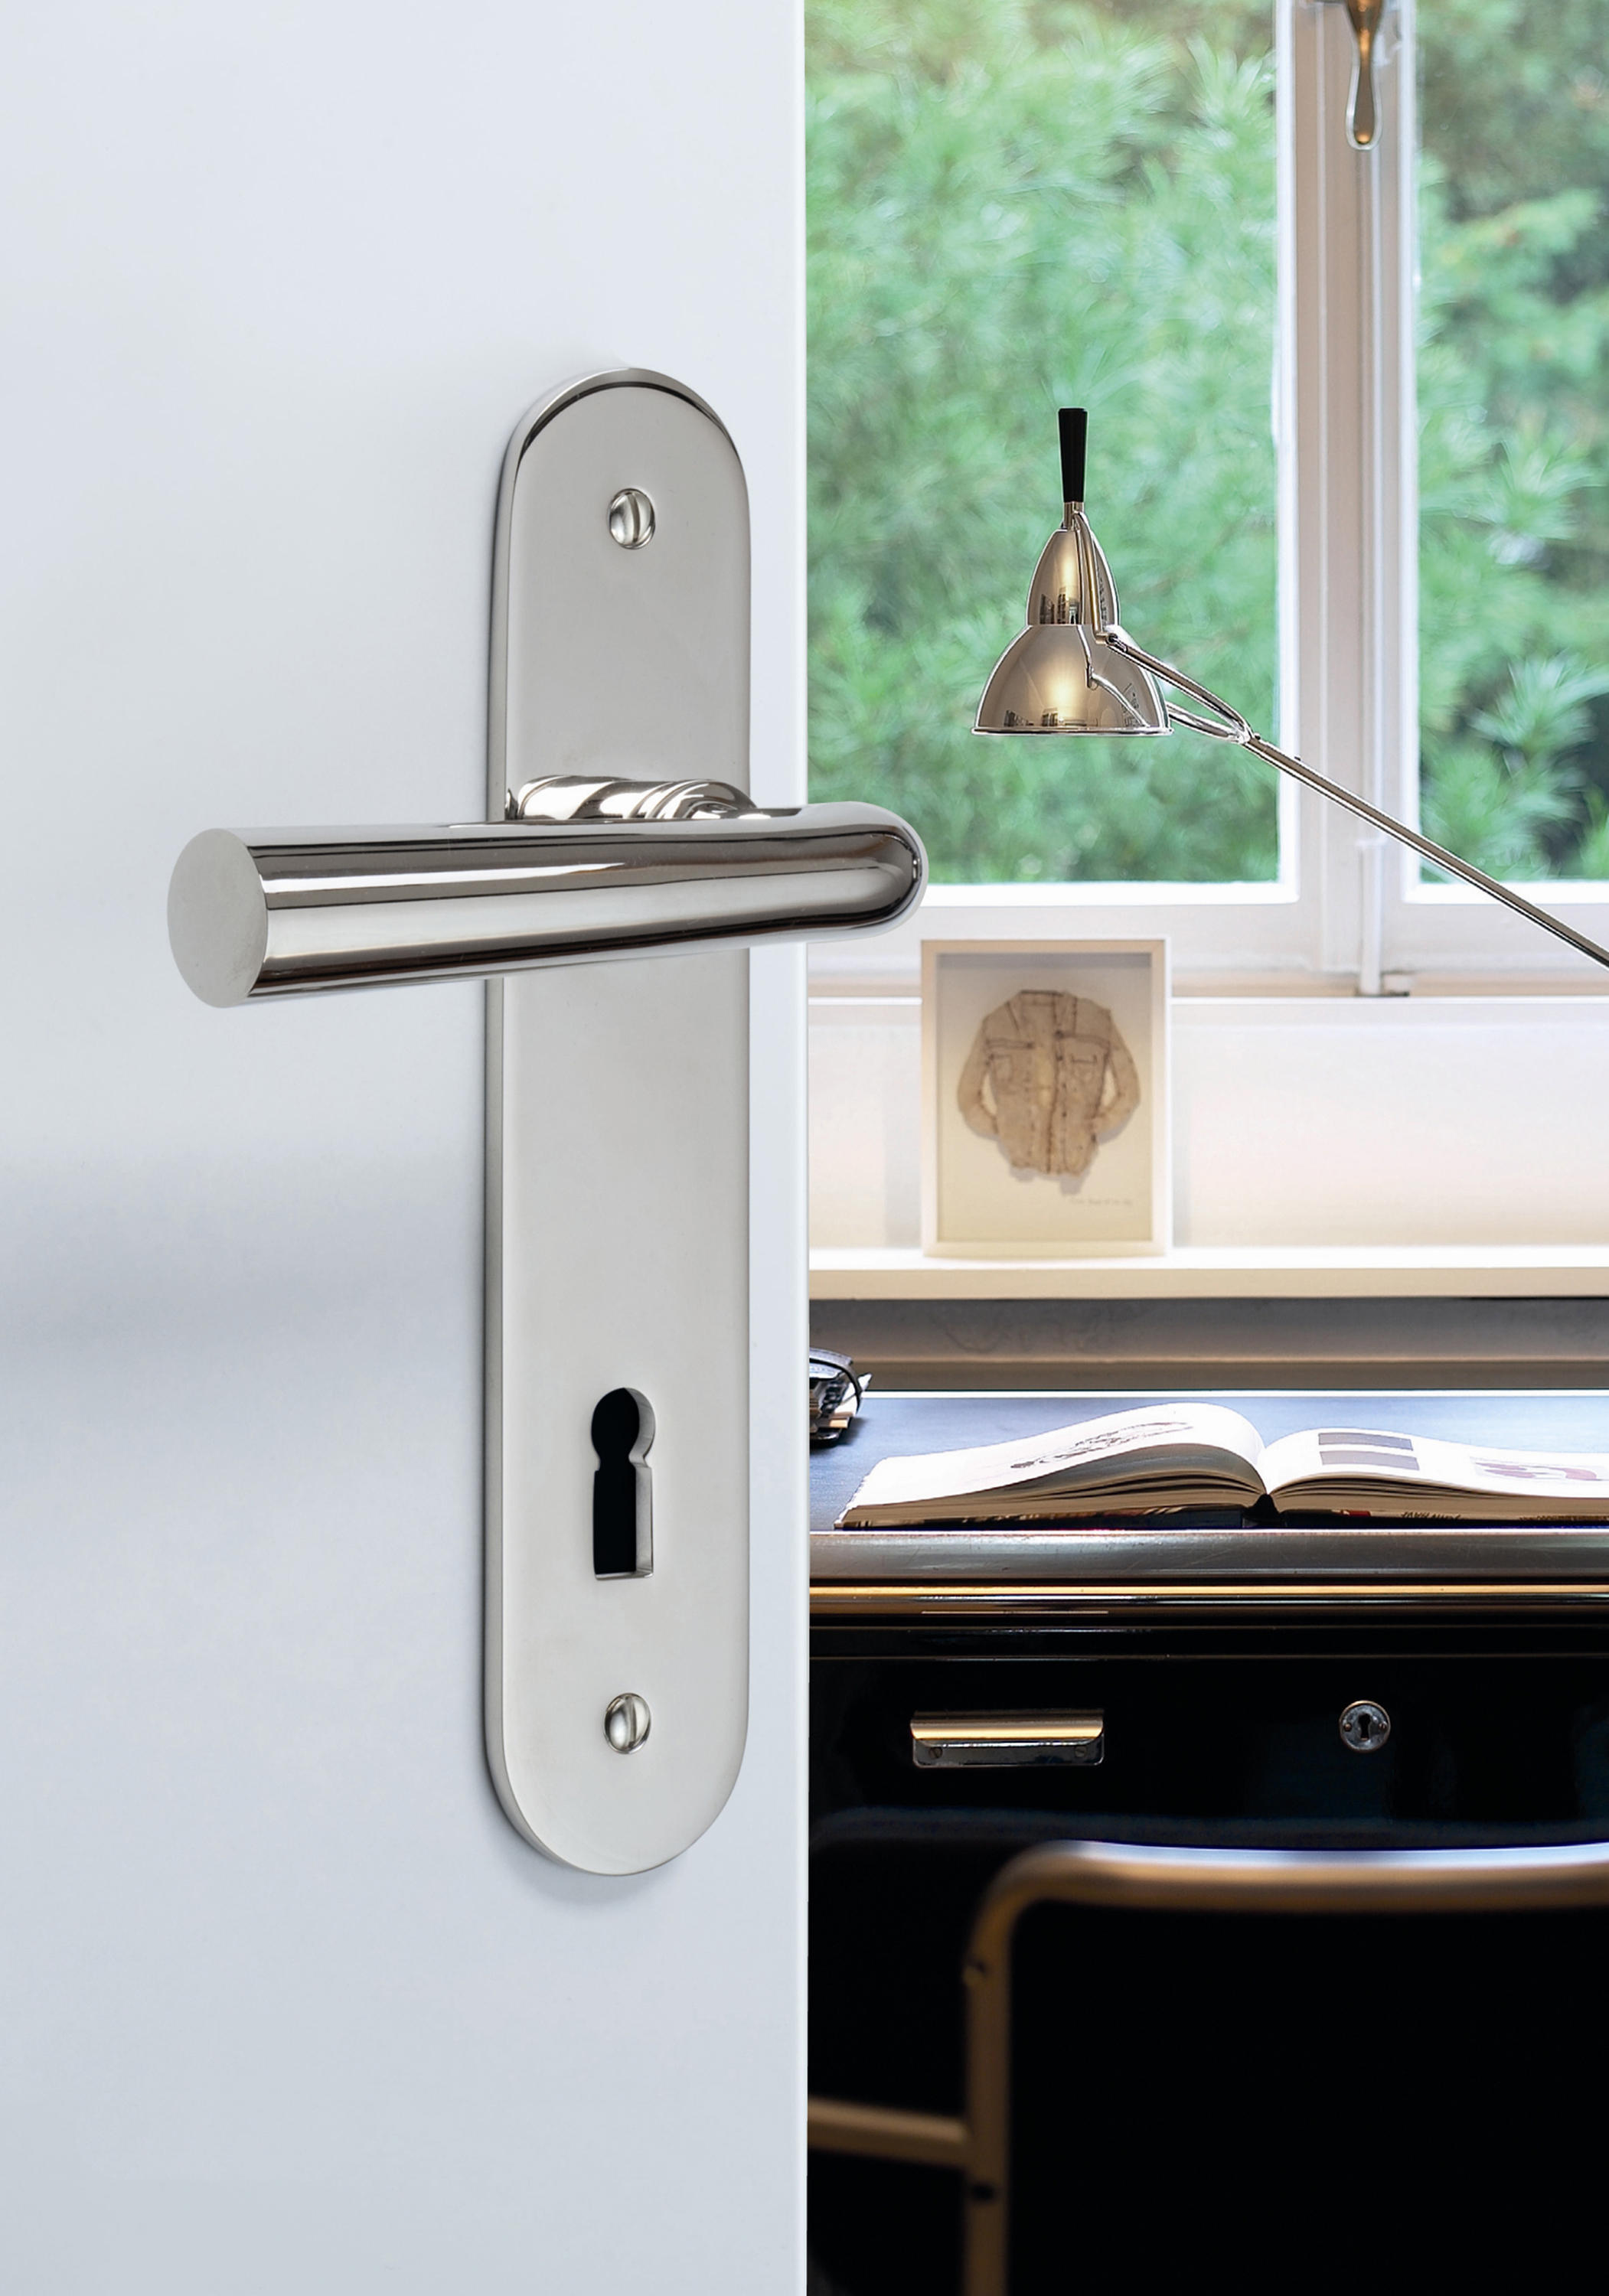 Ferdinand Kramer ferdinand kramer window handle high security fittings from